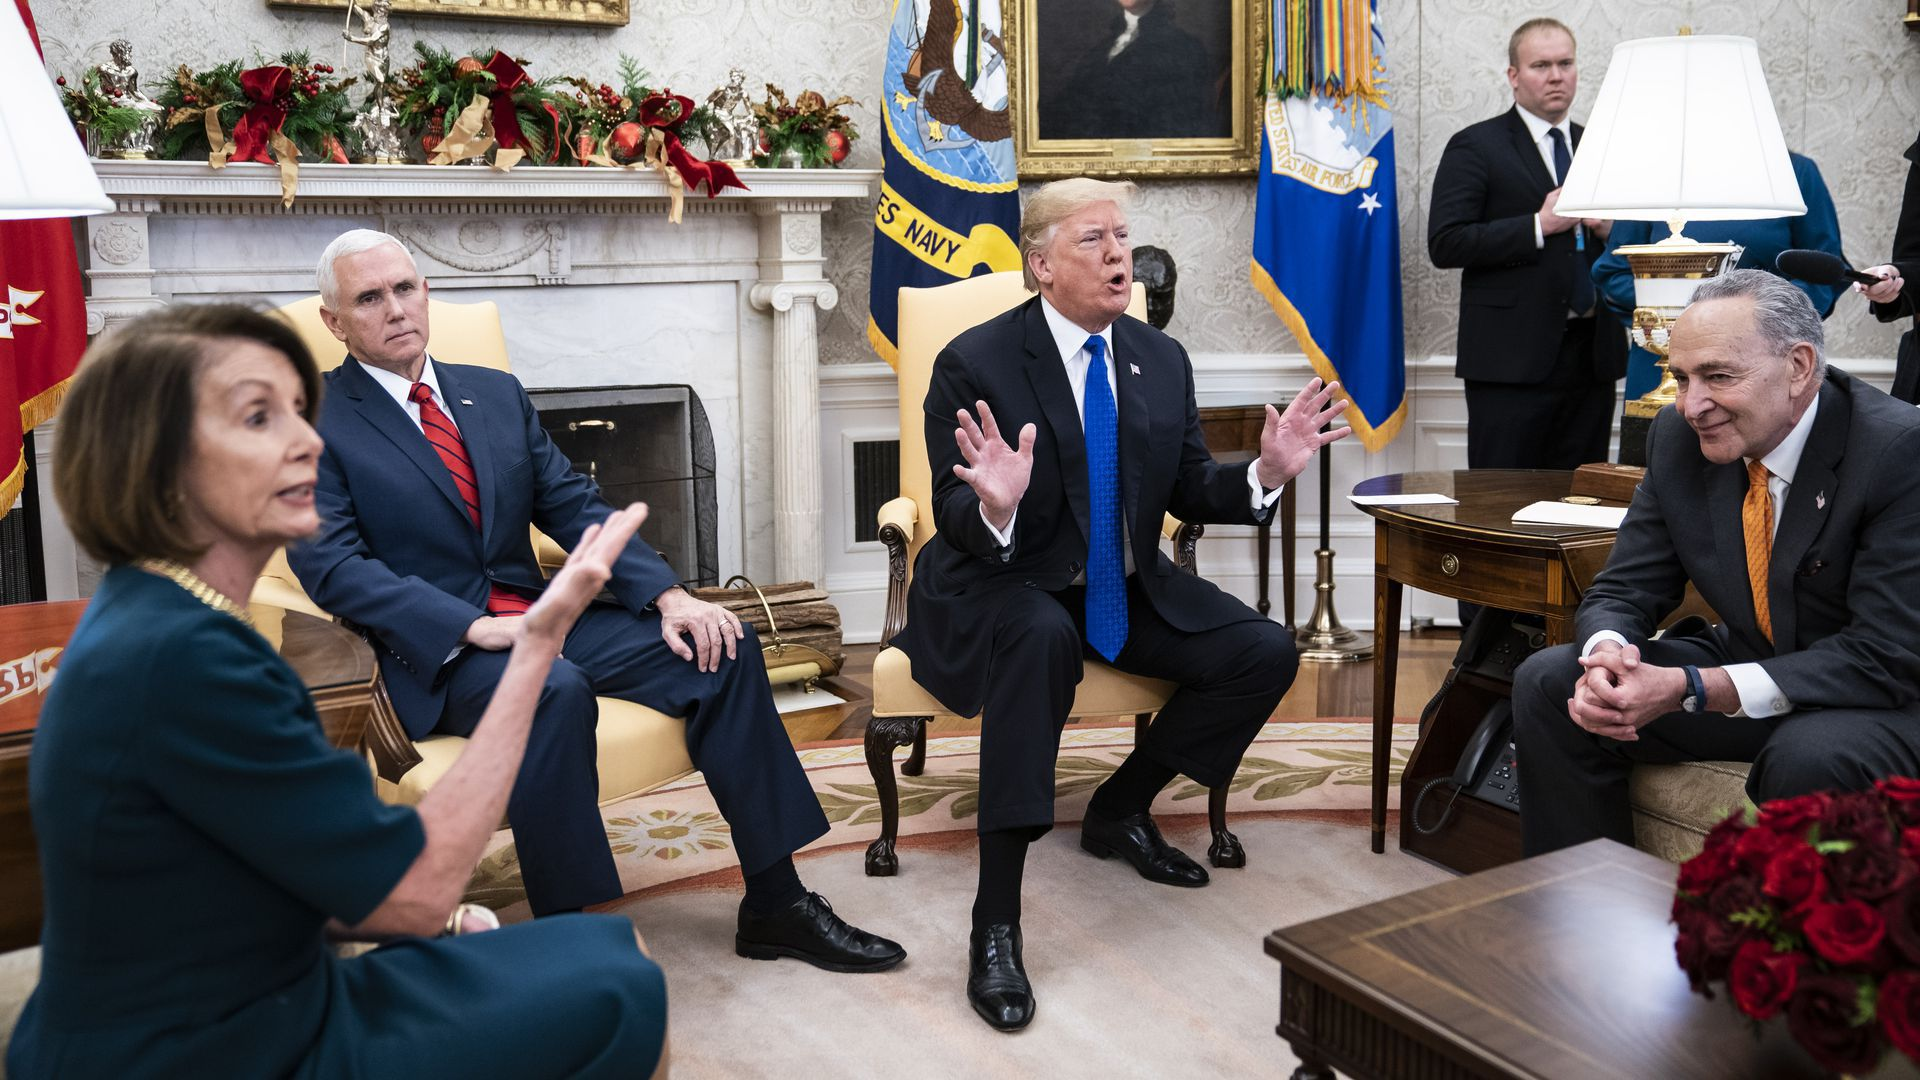 Trump with Pence, Pelosi and Schumer